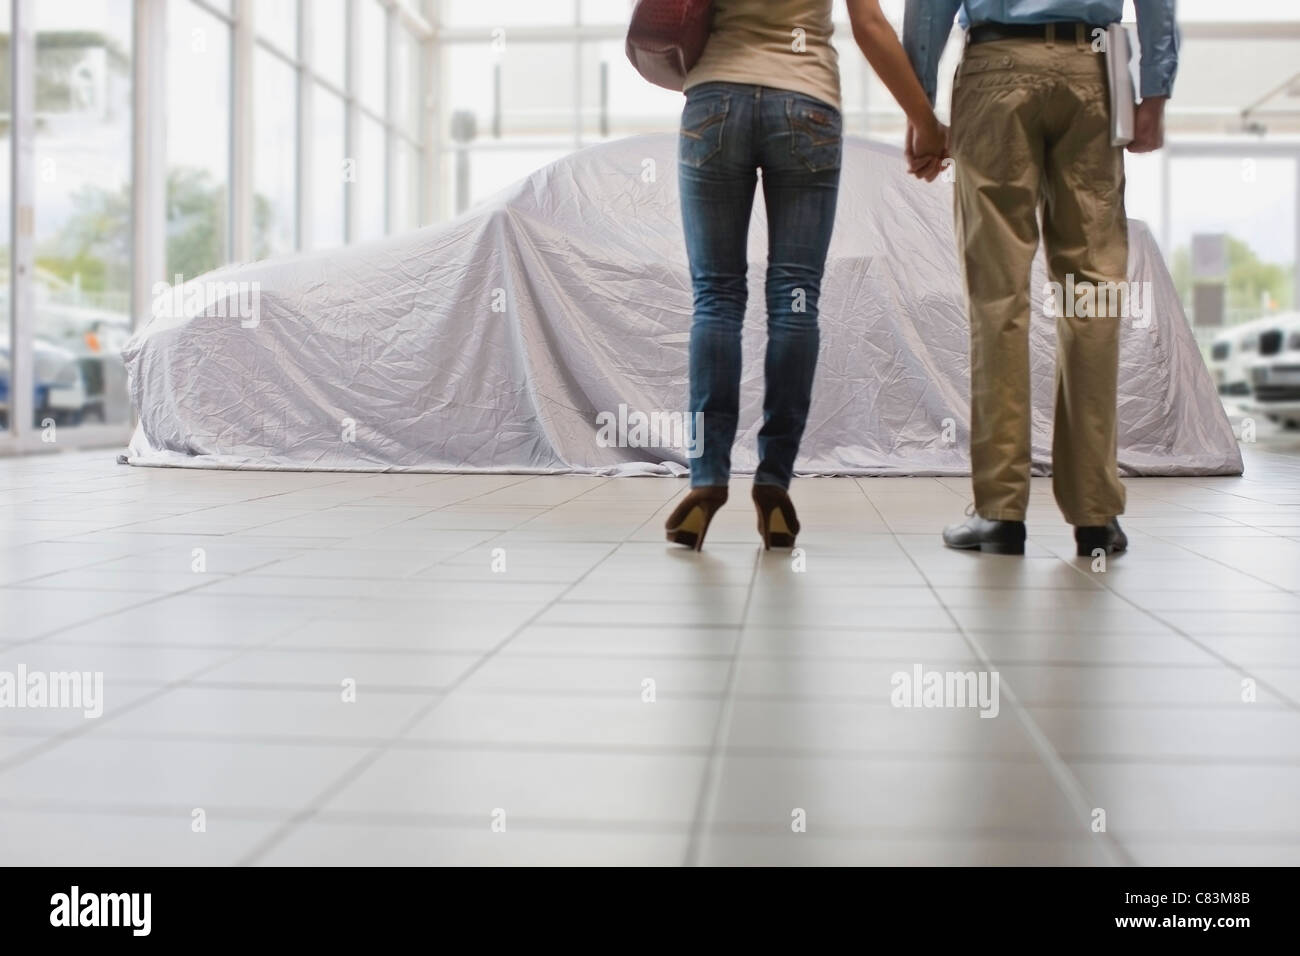 Couple admiring new car under cloth - Stock Image